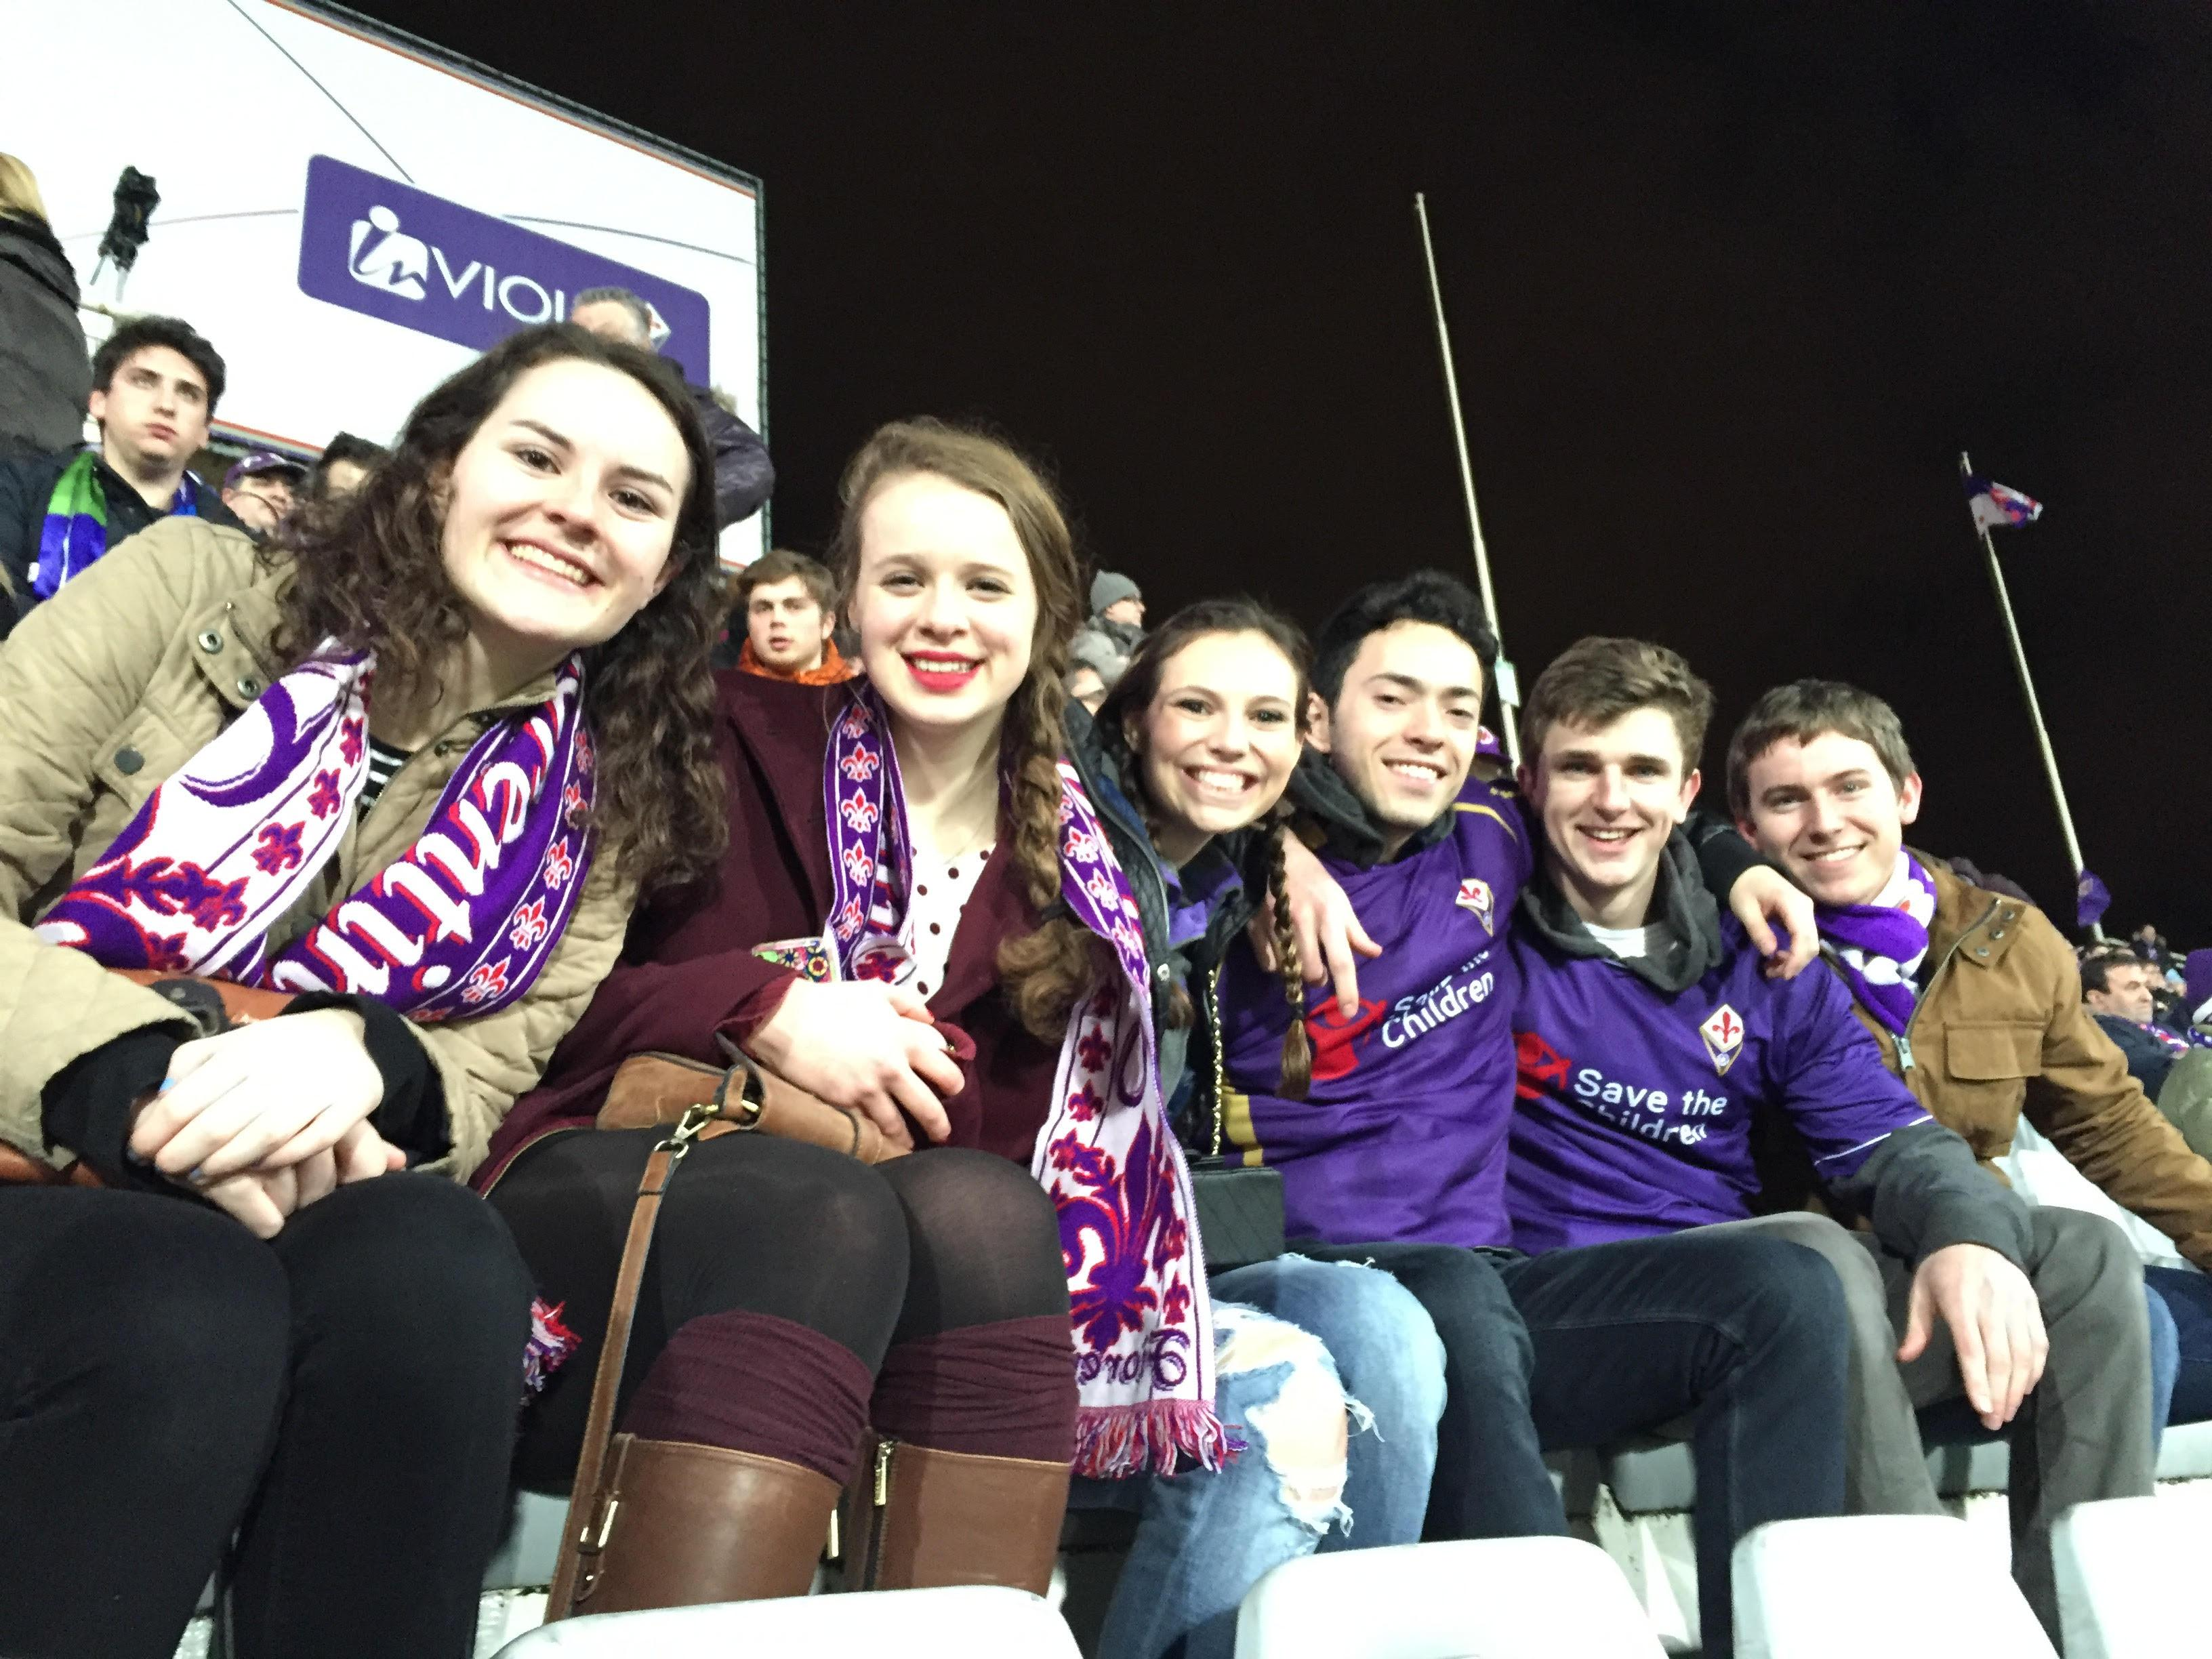 Students wearing AC Fiorentina scarves at a soccer game.